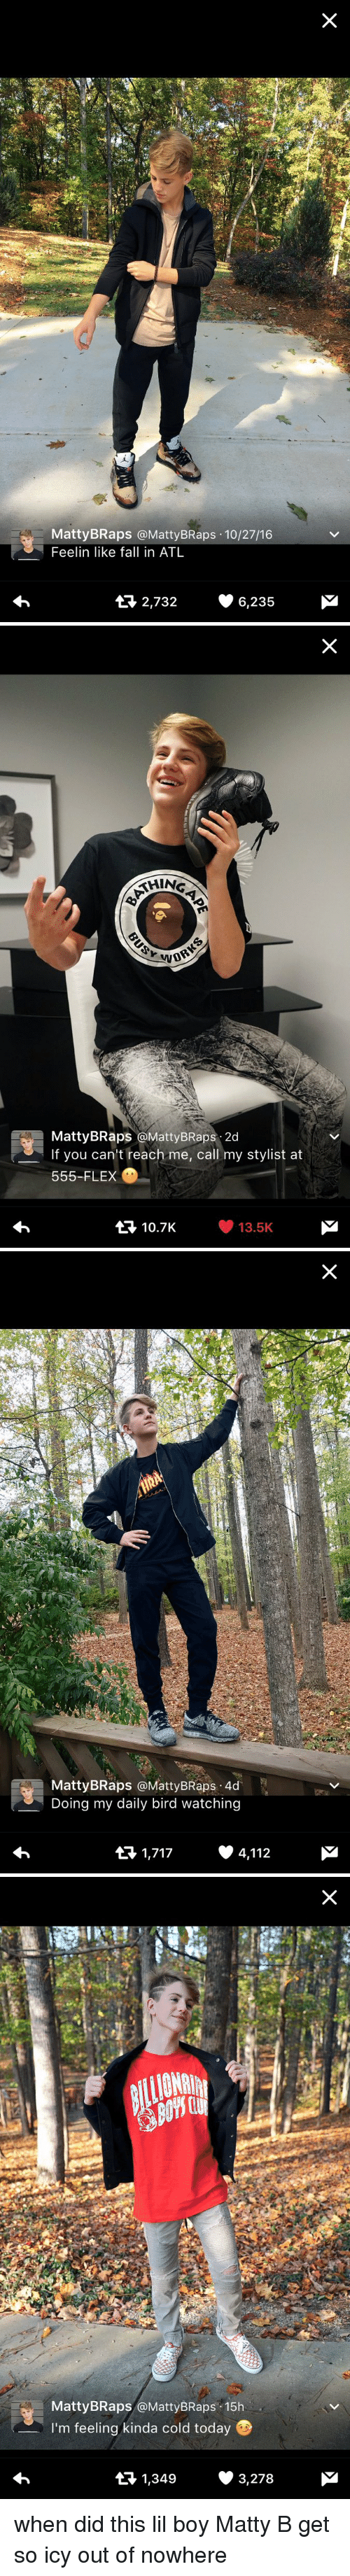 Matti Braps: MattyBRaps a Matty BRaps 10/27/16  Feelin like fa  in ATL  2,732 6,235   SHING  MattyBRaps a Matty BRaps 2d  If you can't reach me, call my stylist at  555-FLEX  M  10.7K 13.5K   MattyBRaps Matty BRaps 4d  Doing my daily bird watching  4,112  1,717   Matty BRaps @Matty BRaps 15h  I'm feeling kinda cold today  t 1,349  3,278 when did this lil boy Matty B get so icy out of nowhere